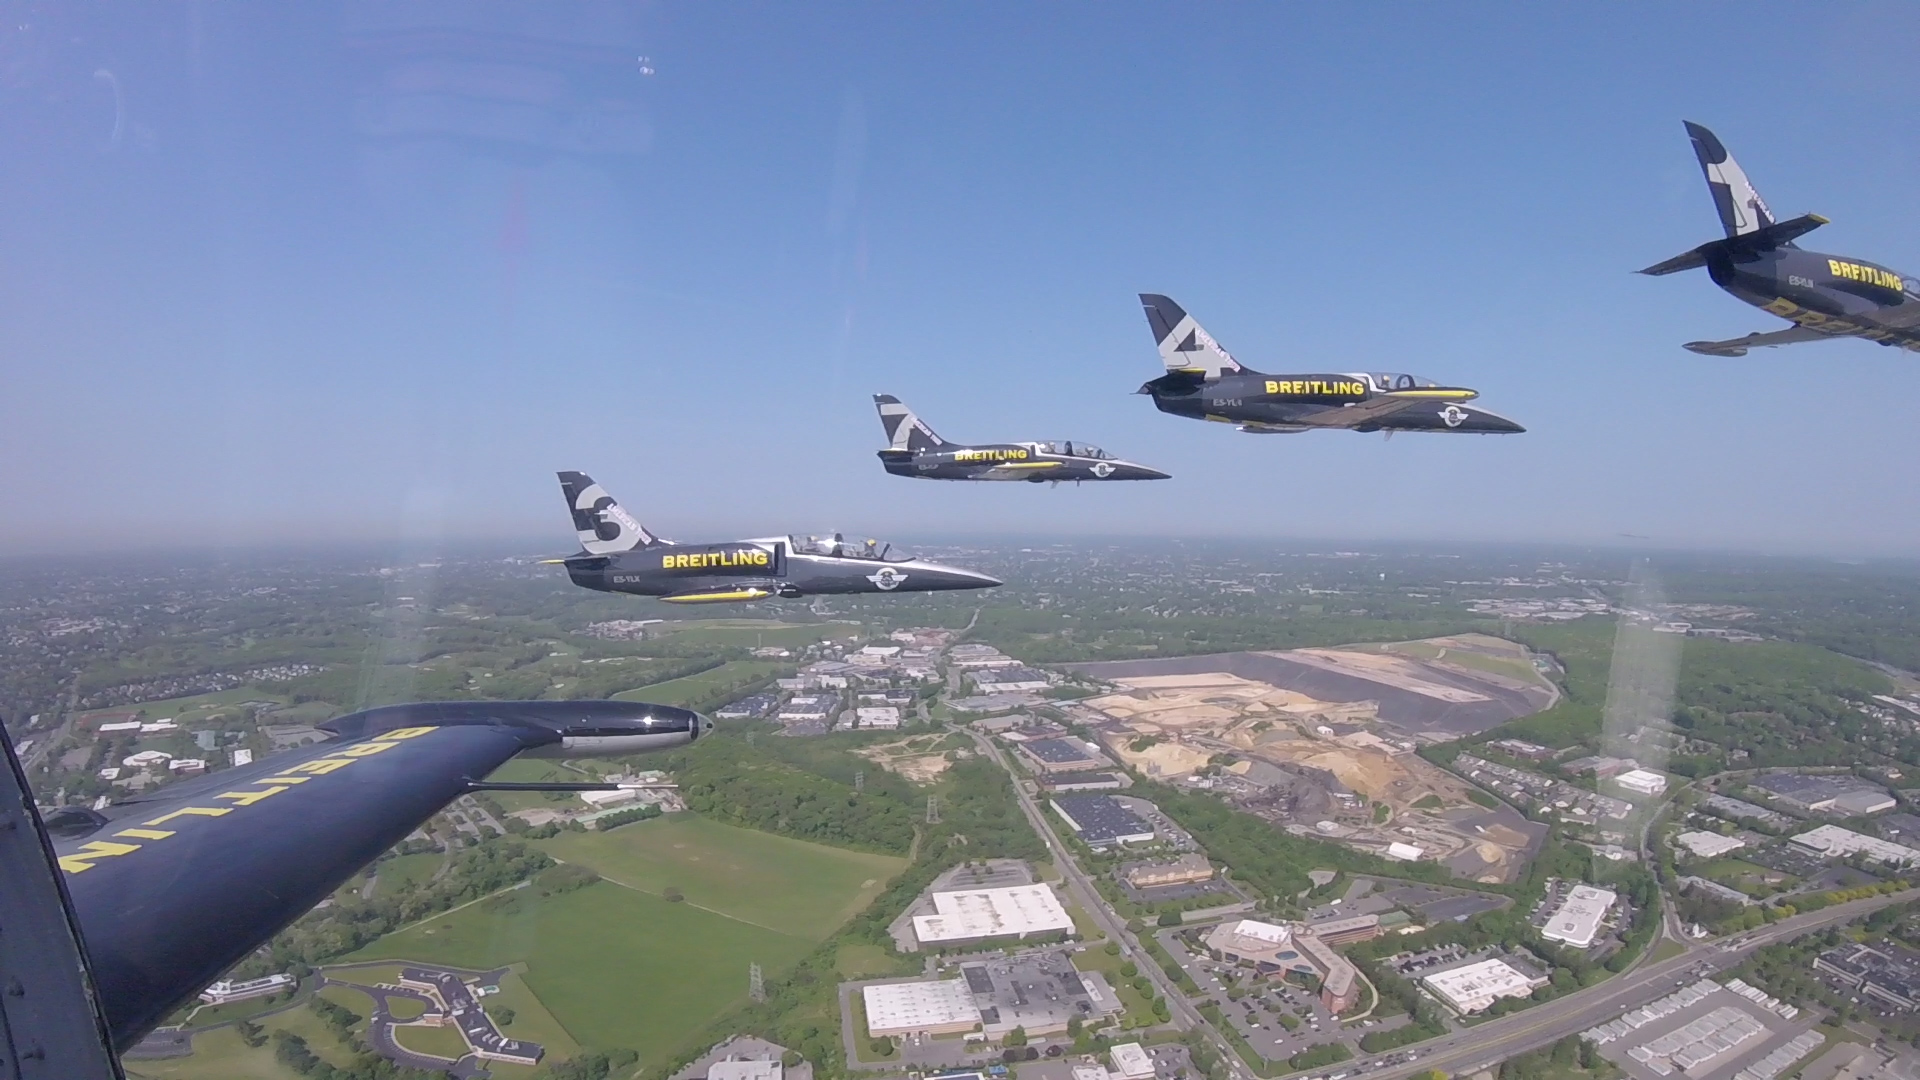 Video: Flying in formation: What it takes